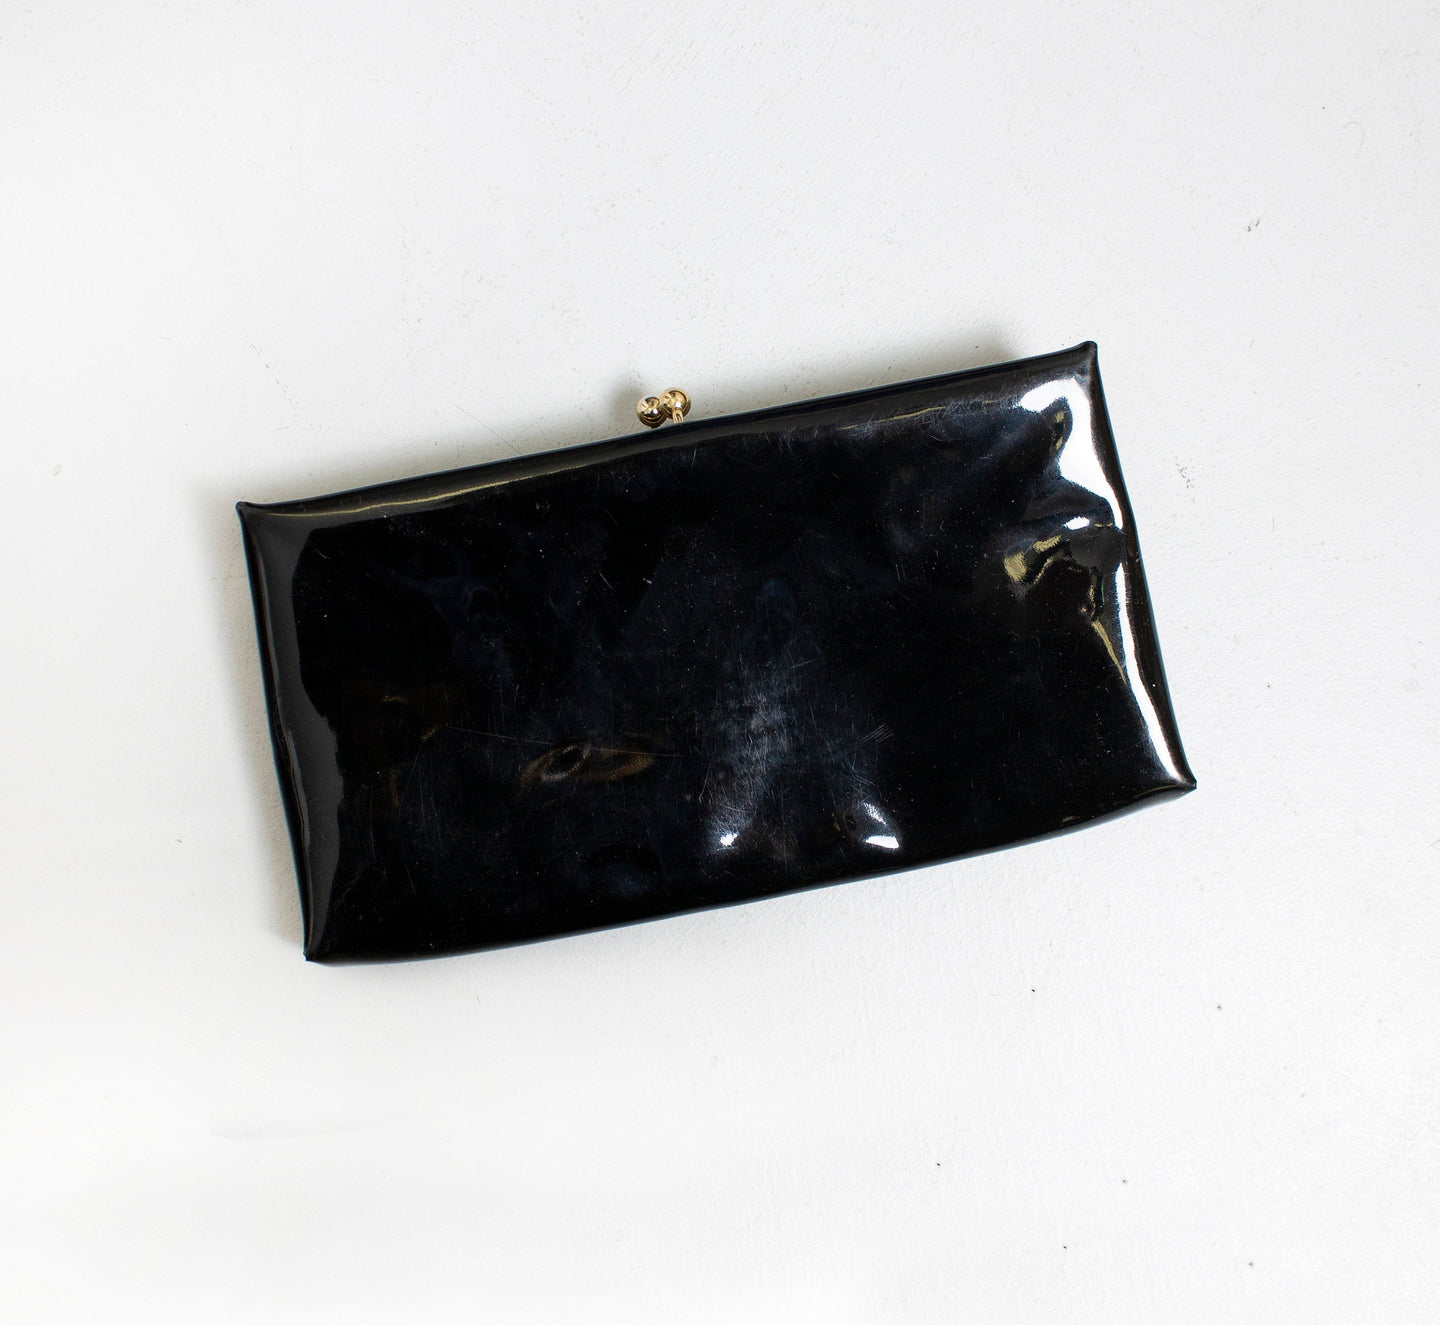 Vintage 1950s Purse Black Patent Vinyl Cocktail Clutch Bag